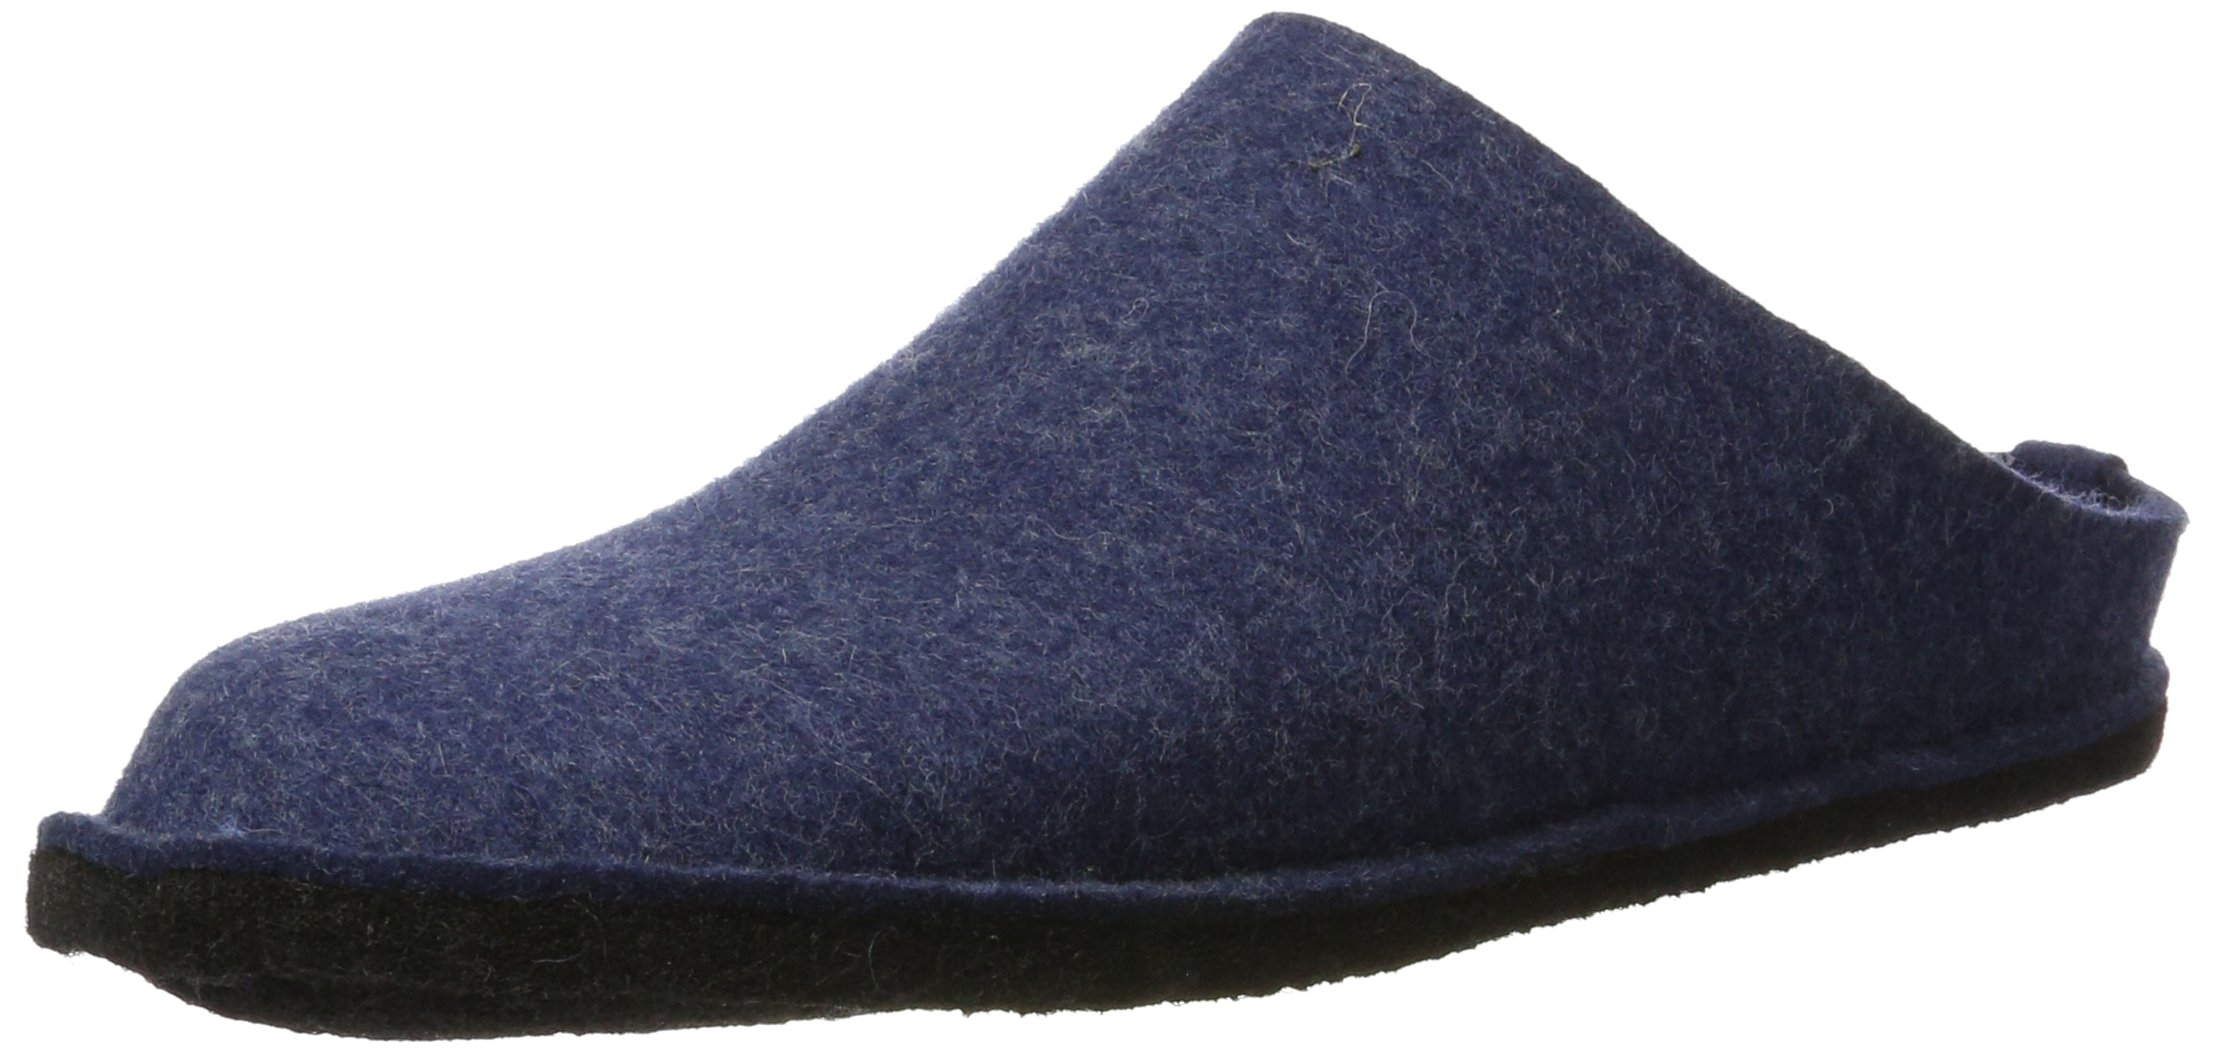 Haflinger 311010 Slippers, Filztoffel Flair Soft, Jeans, Gr 50